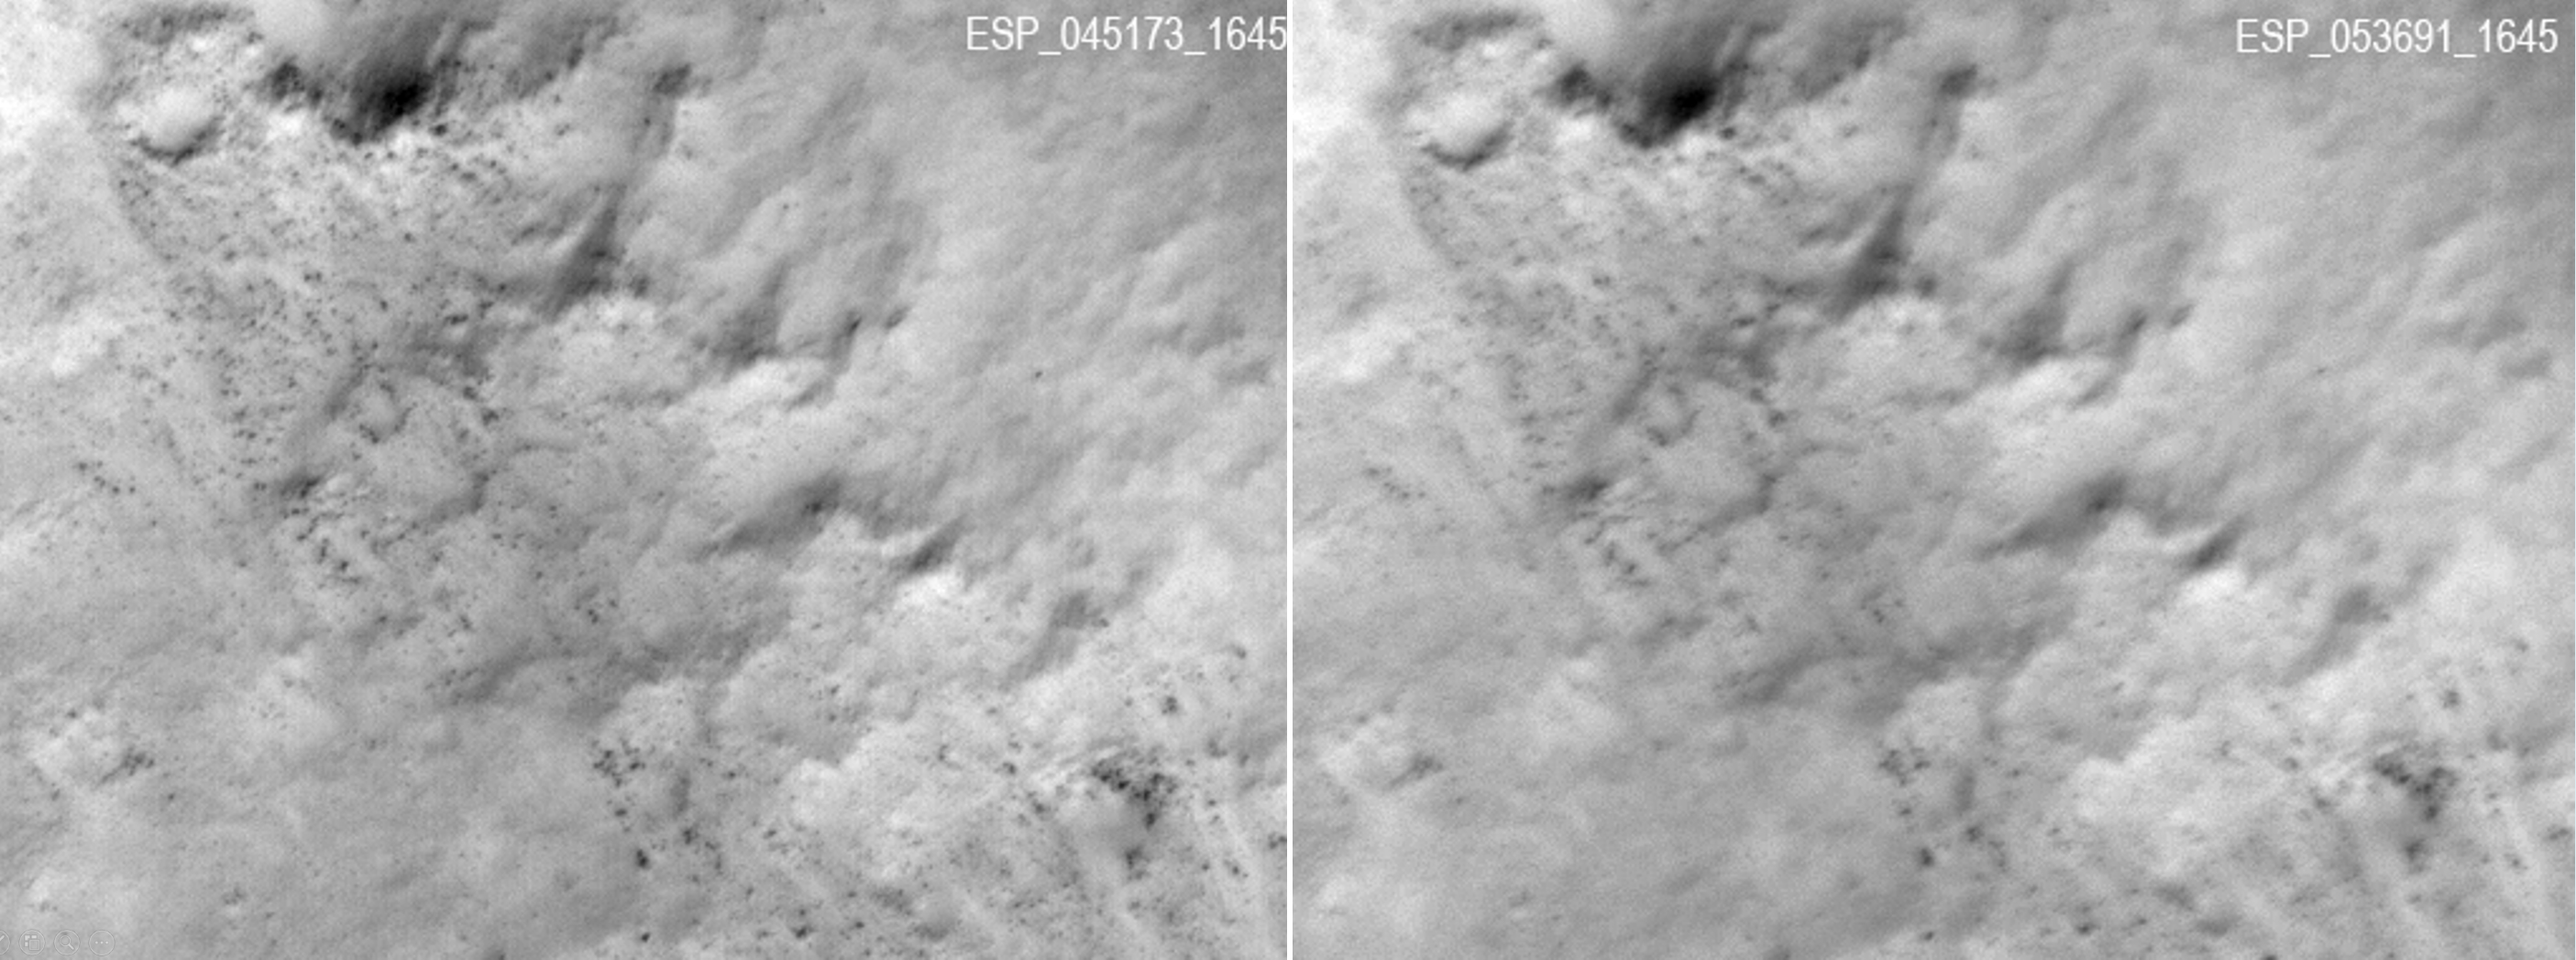 two side-by-side images of martian landscape from above, one blurry